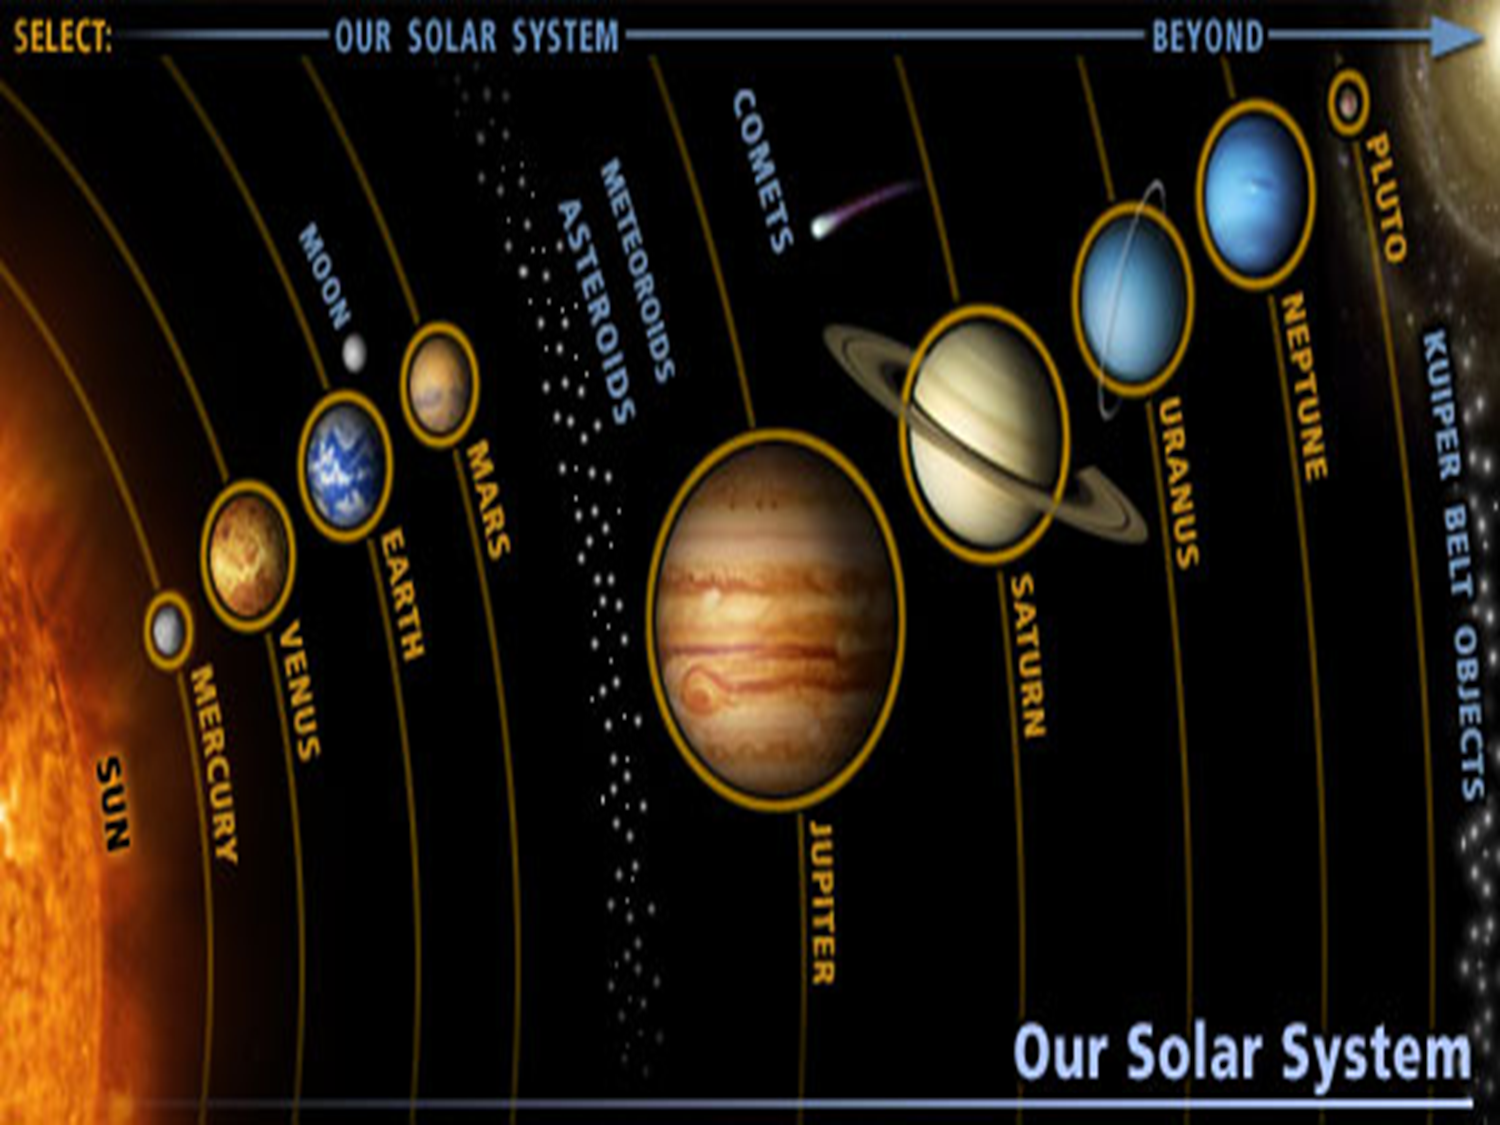 an essay about the solar system